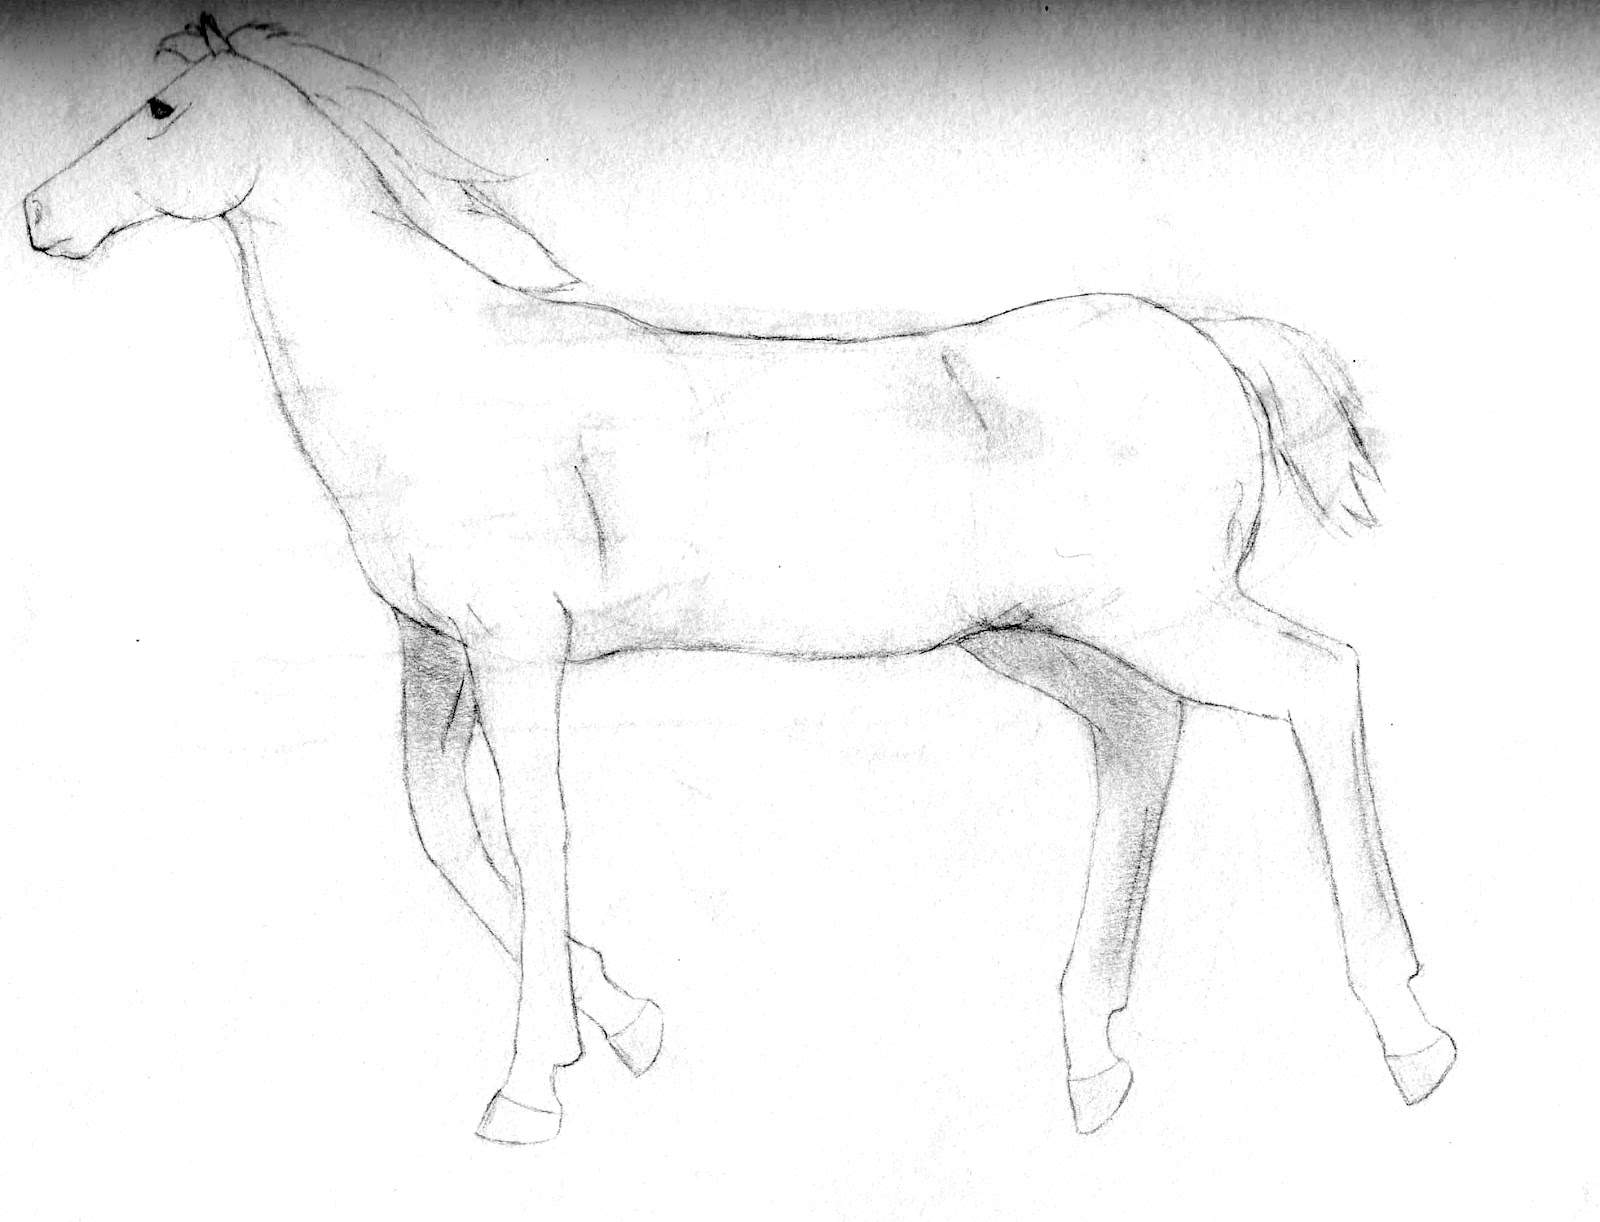 Galloping horse sketches - photo#38